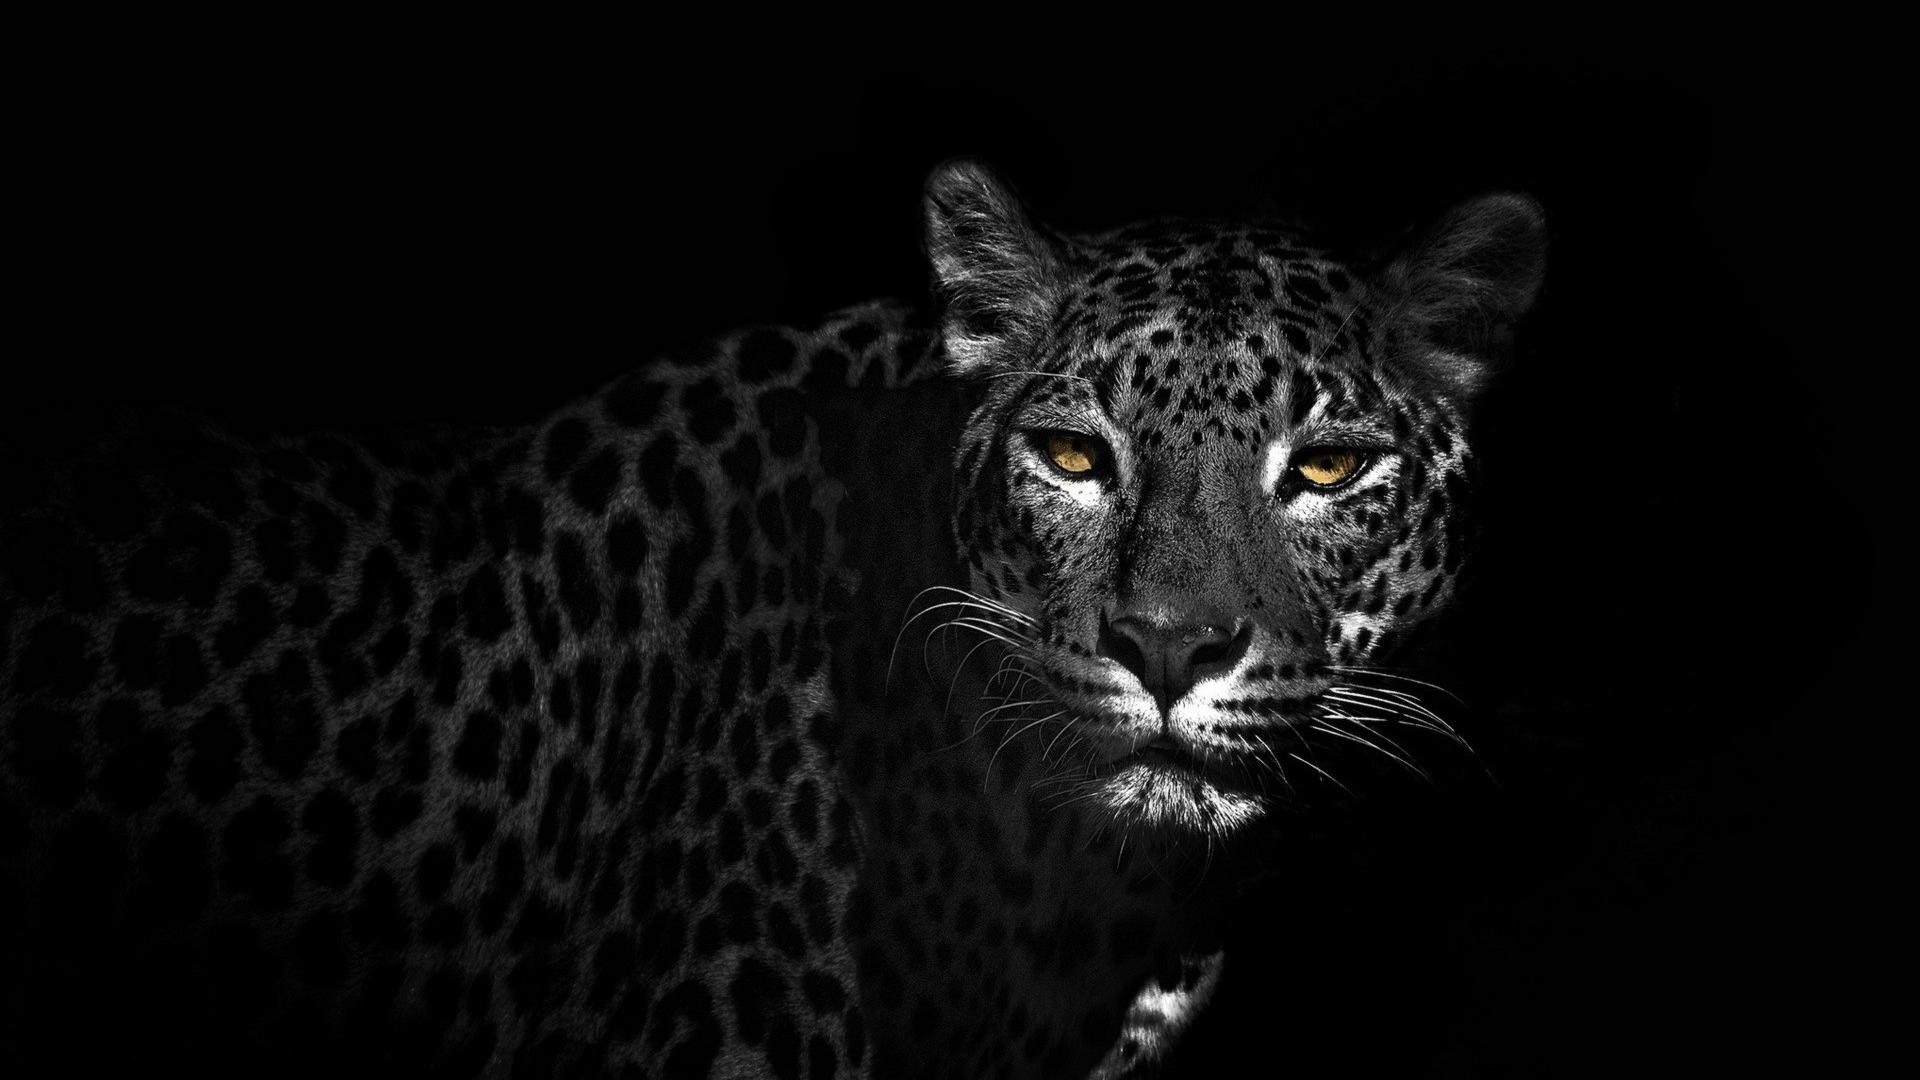 download Black and white animals leopards wallpaper 38563 1920x1080